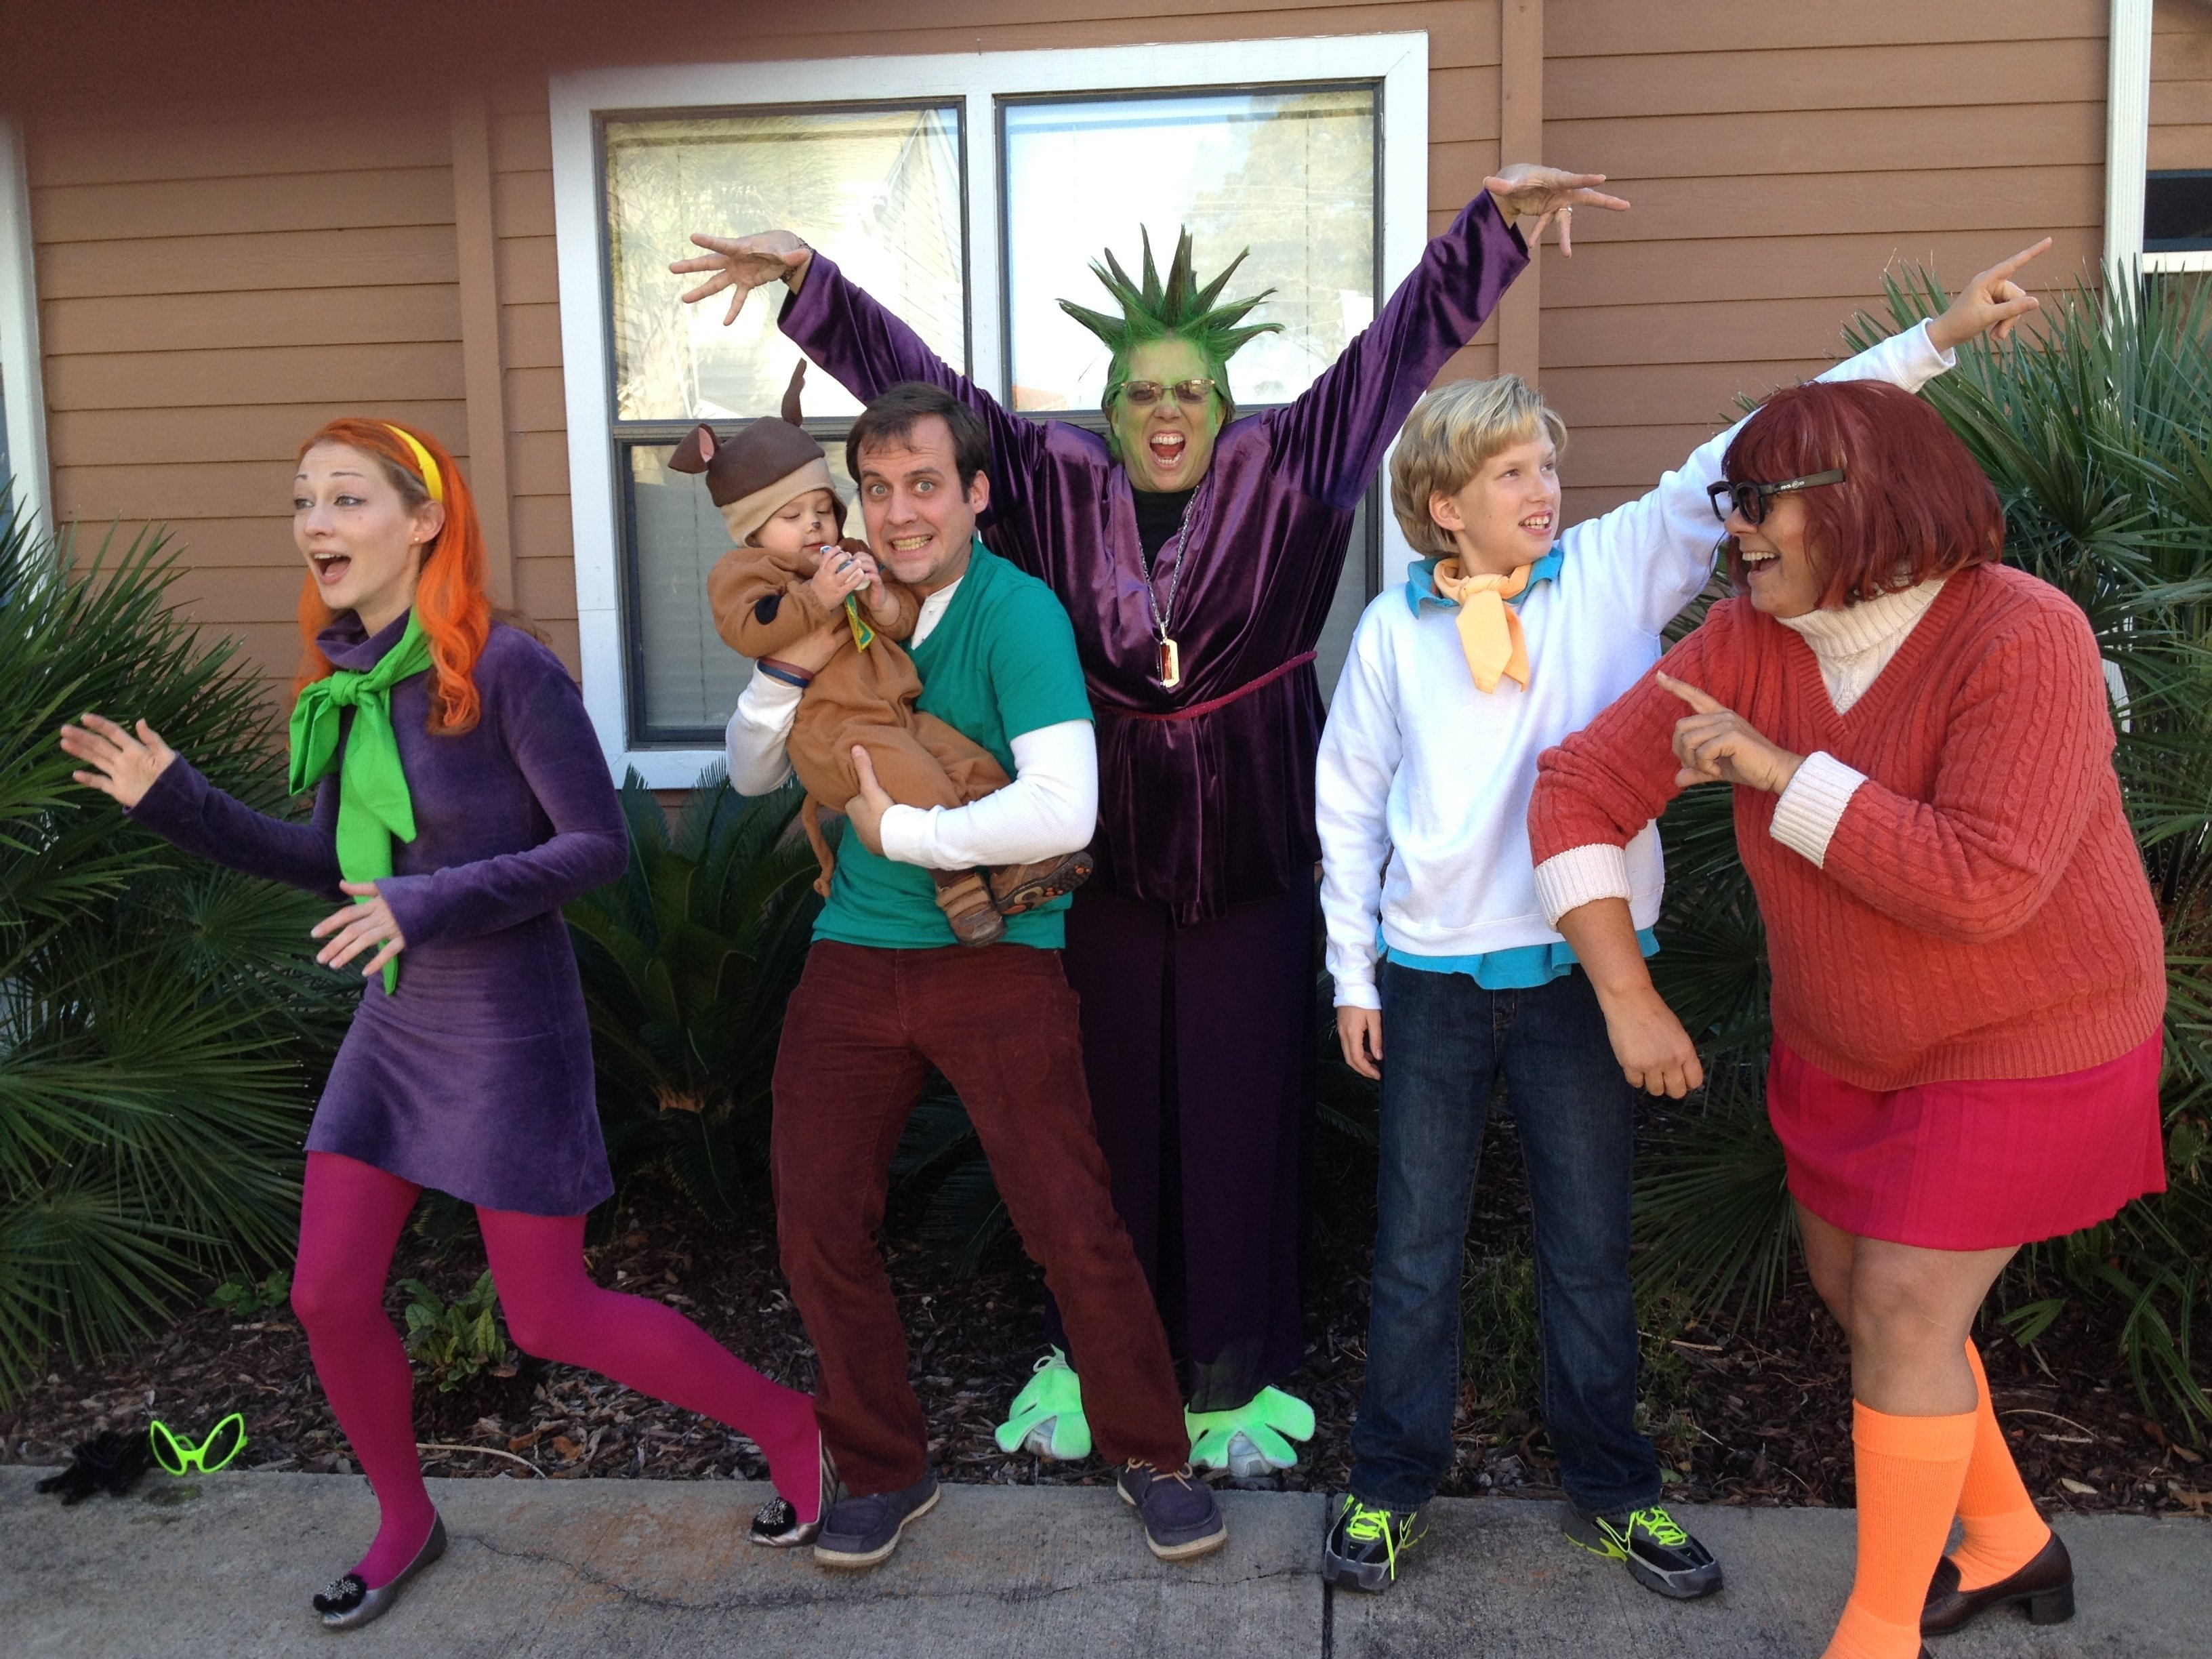 10 Pretty Group Costume Ideas For 6 scooby doo and the gang family halloween costume toddler group 1 2020